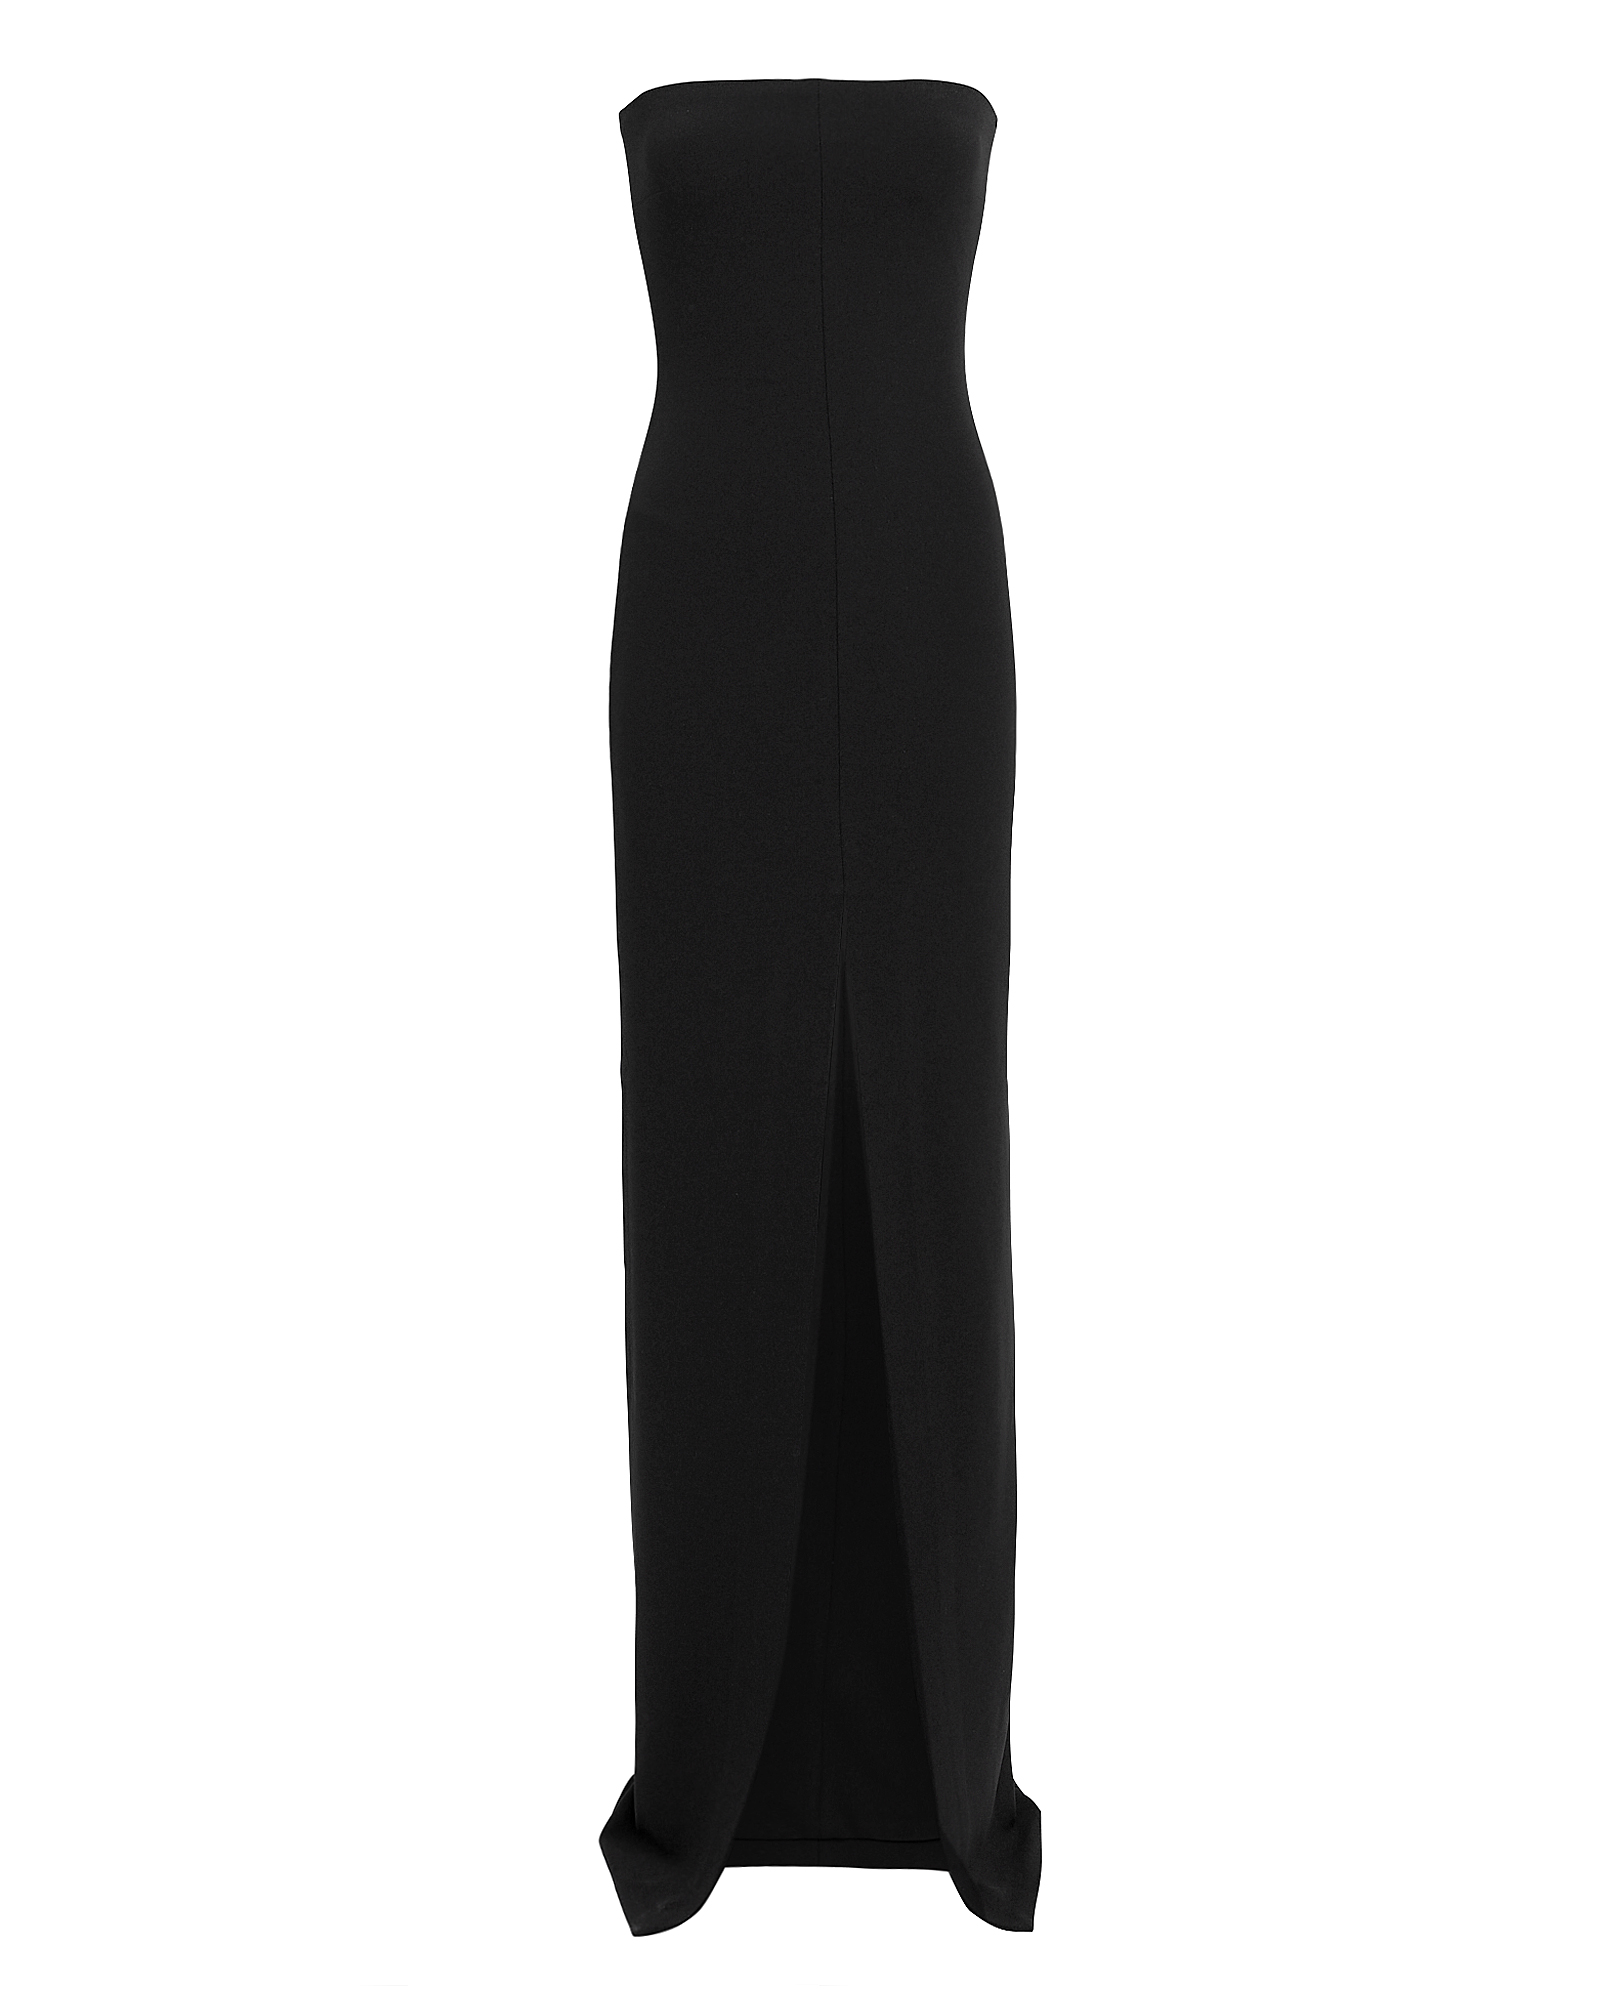 SOLACE London Bysha Black Strapless Gown Black